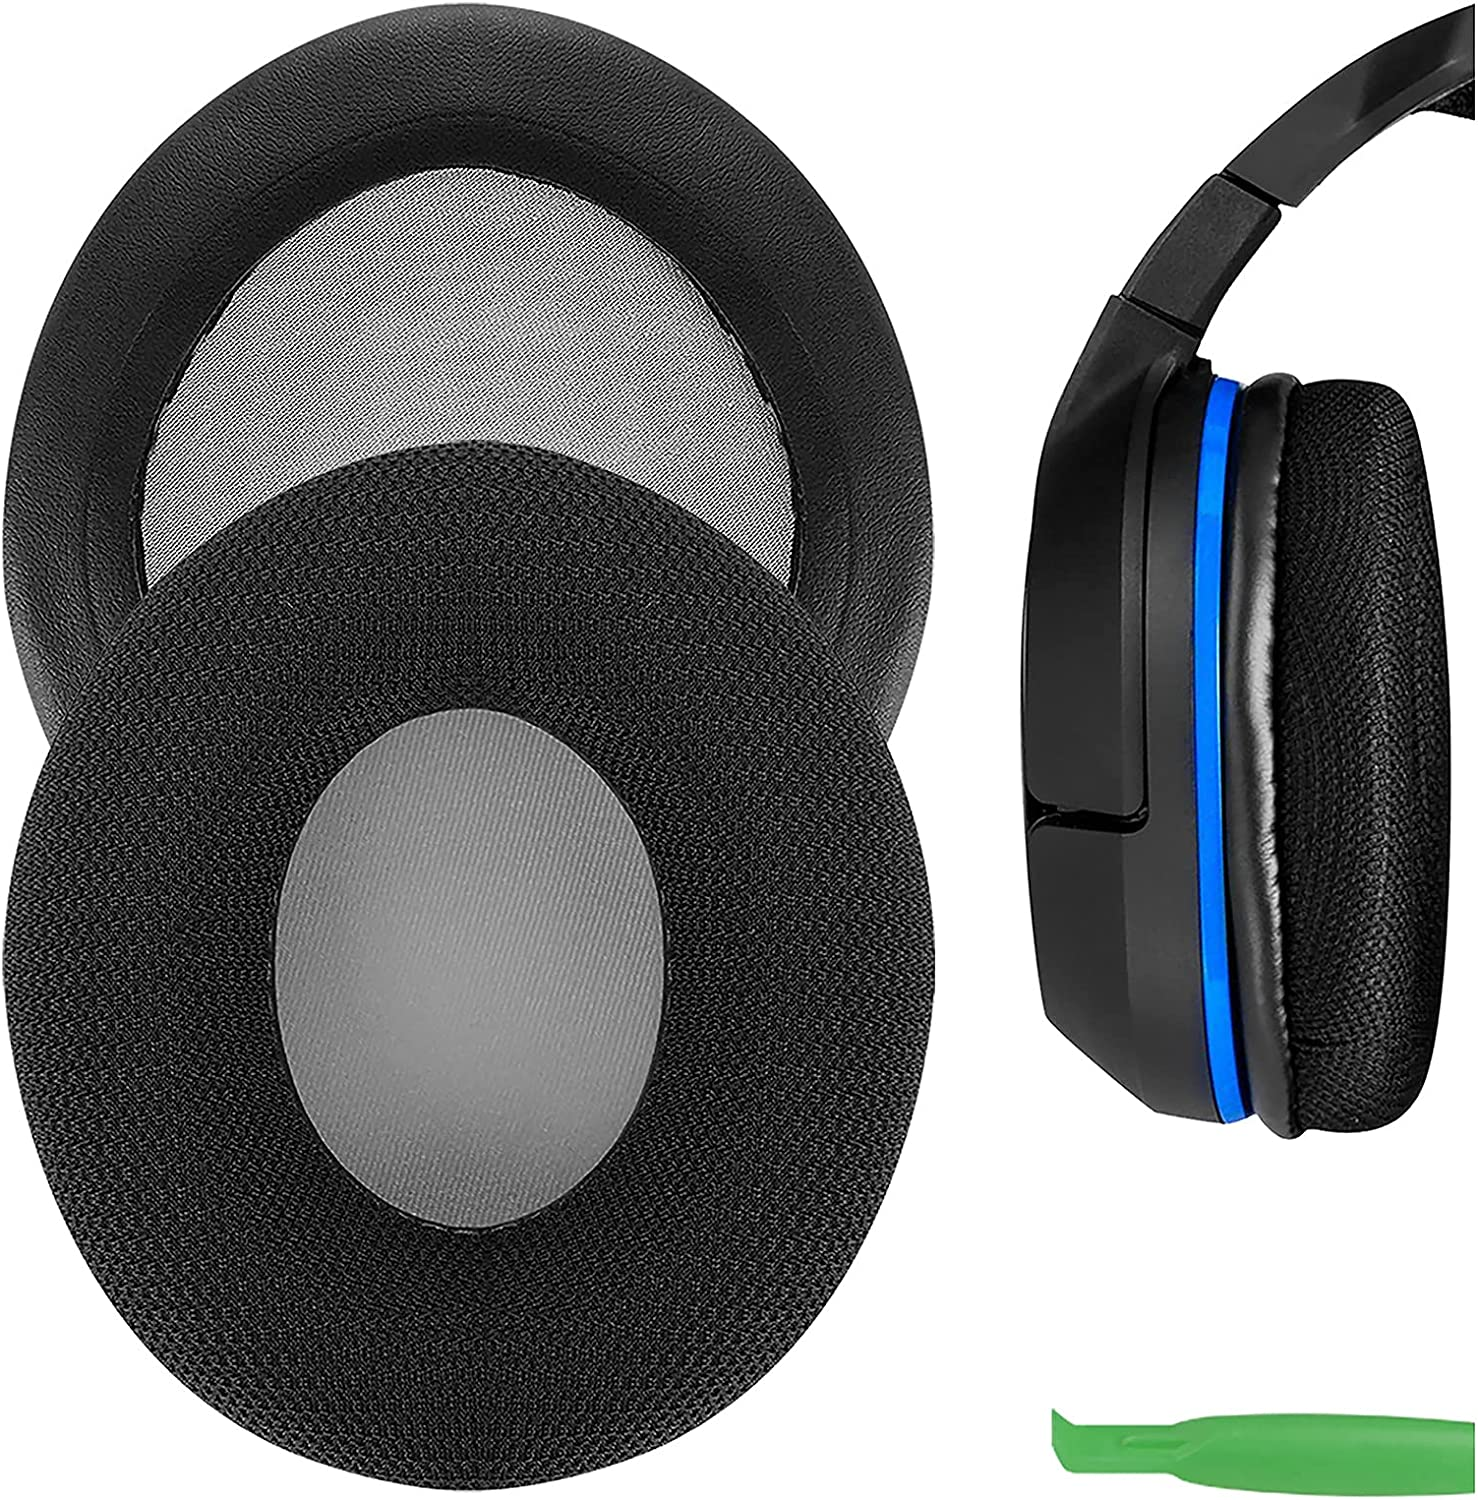 Repair p11 turtle beach Contact Support